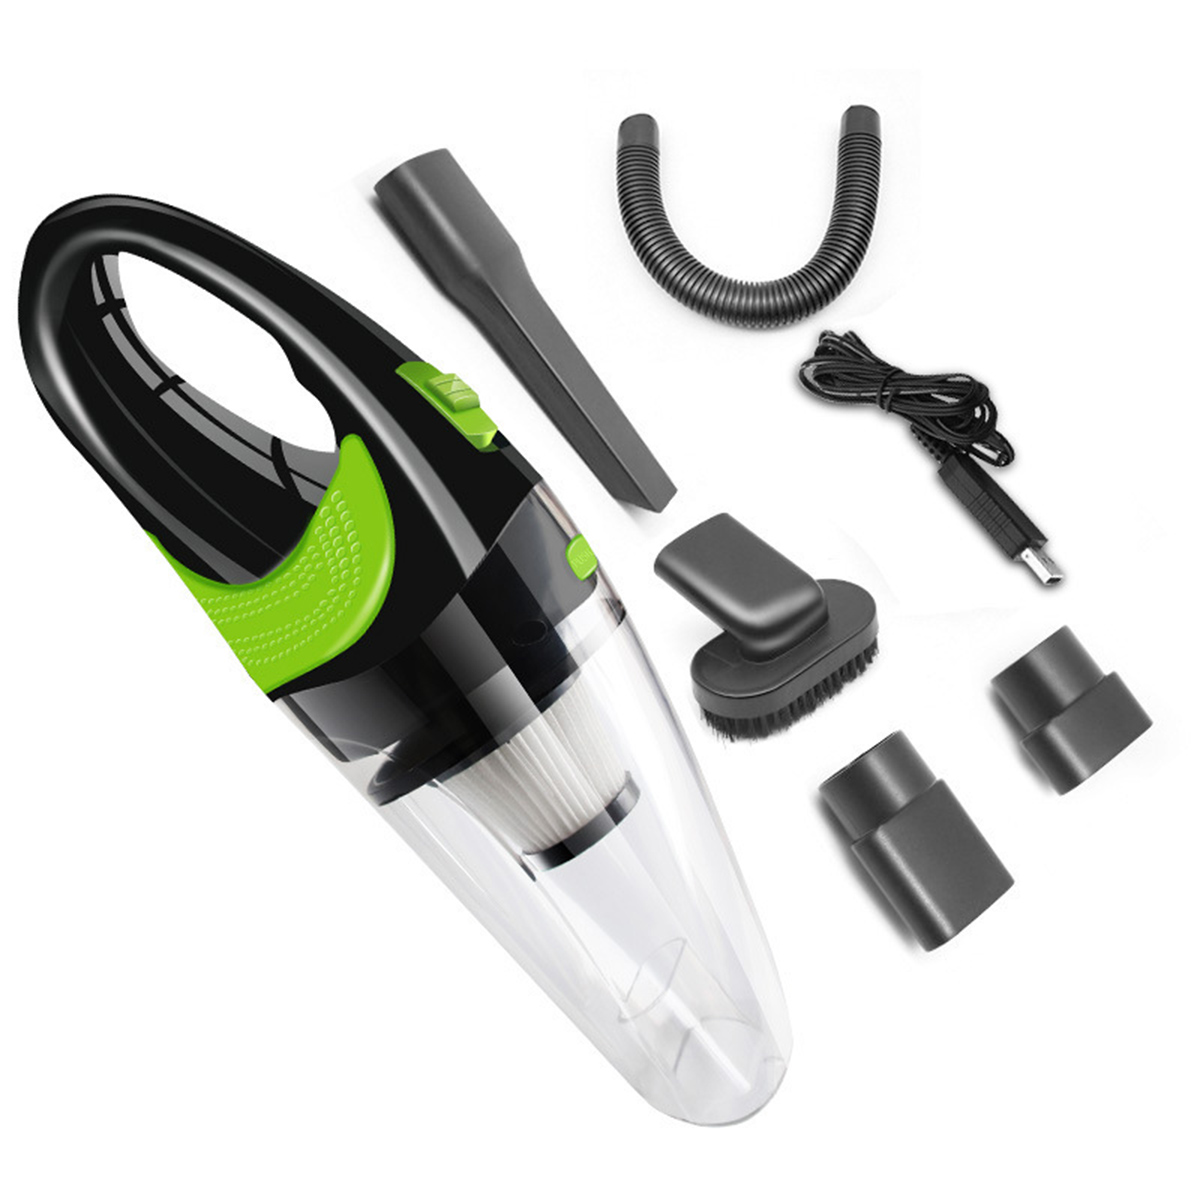 6500pa Handheld Wireless Vacuum Cleaner Home 120W USB Cordless Wet Dry Mini Vacuum Cleaner Dust Collector For Home Car Cleaning